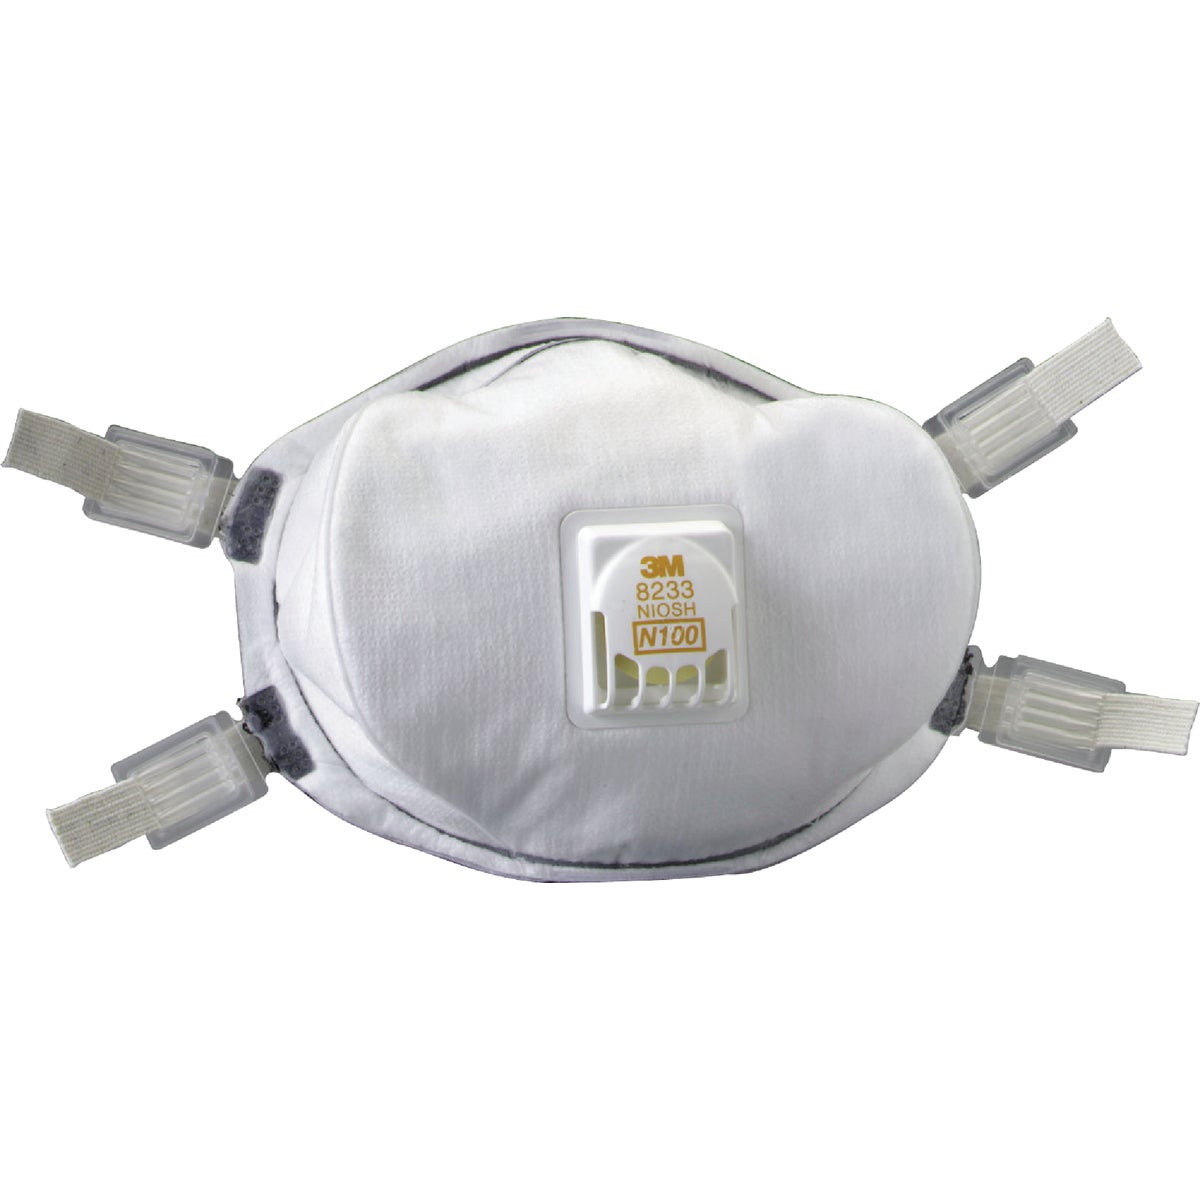 N100 DISP RESPIRATOR - 8233 by 3m Co